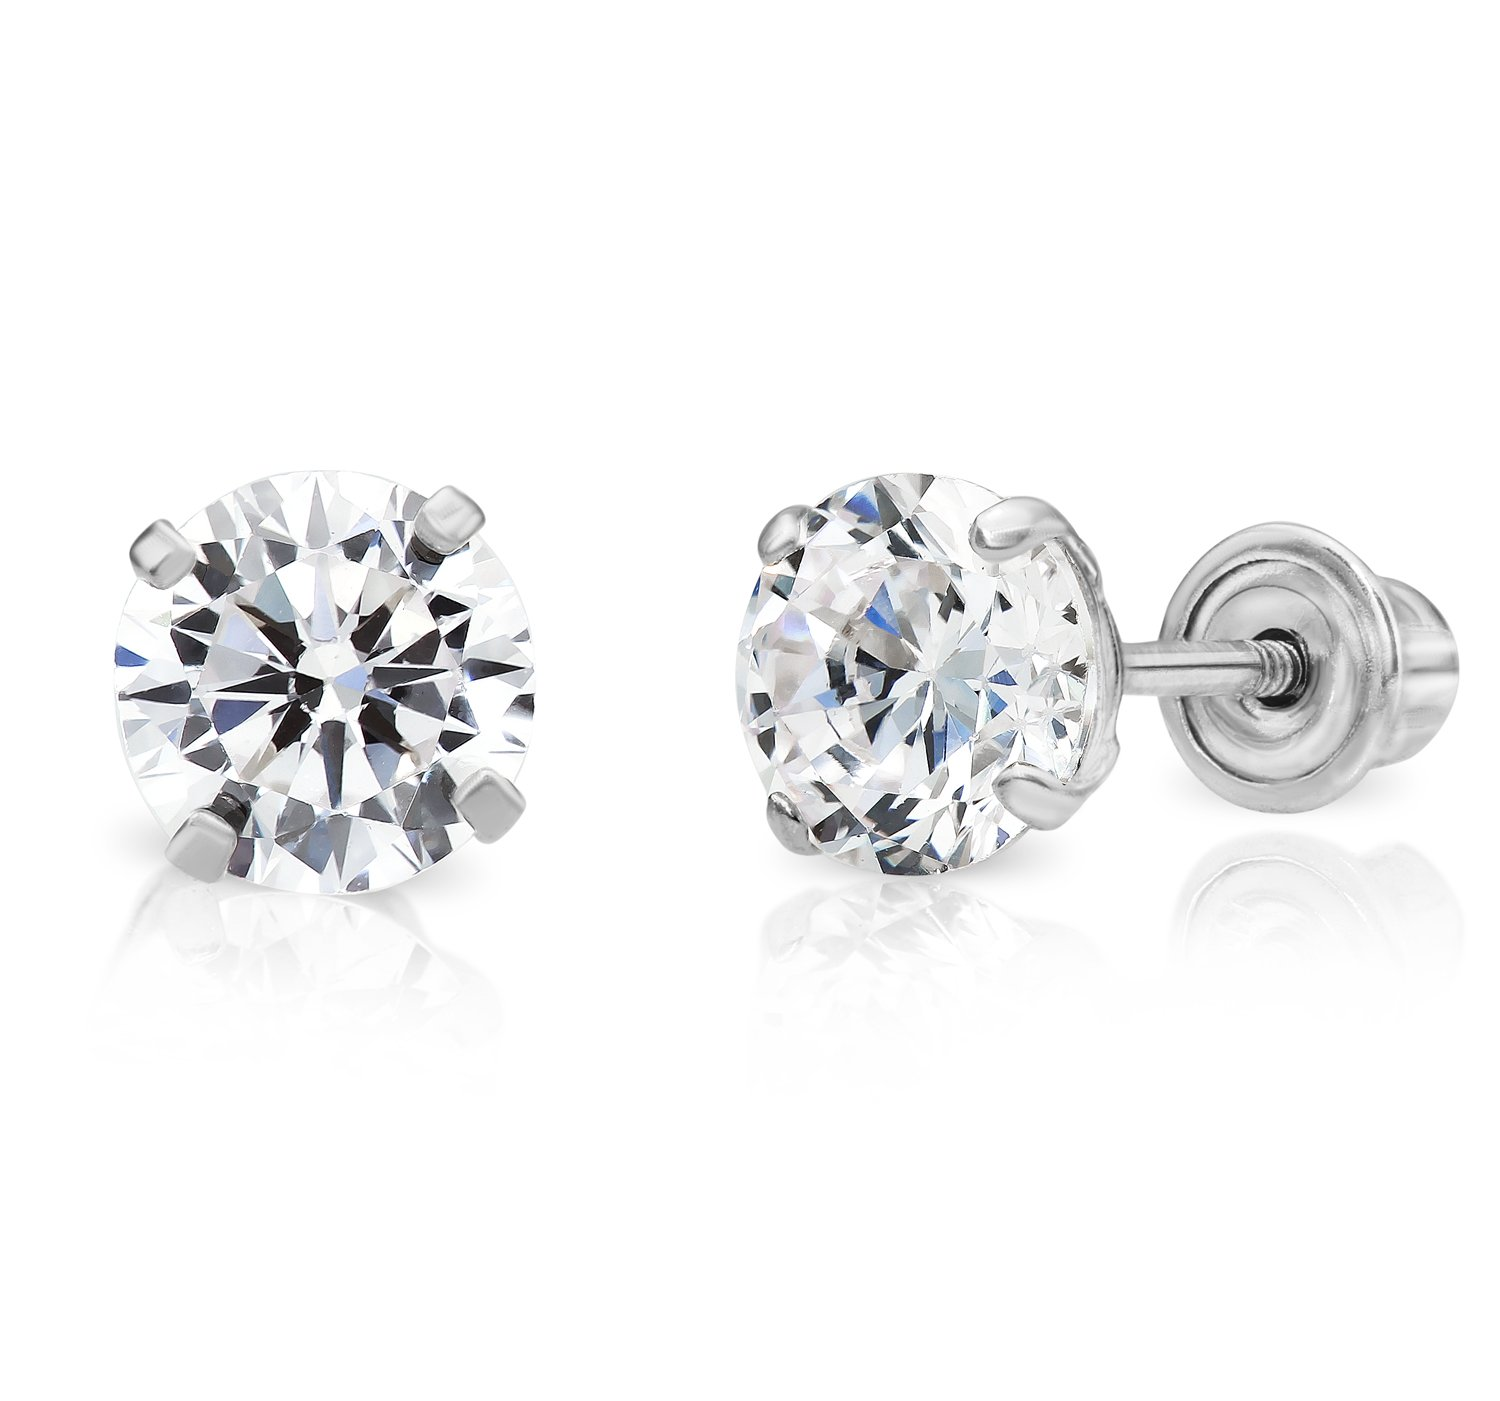 14k White Gold Solitaire Cubic Zirconia CZ Stud Earrings with Secure Screw-backs (5mm) by Art and Molly